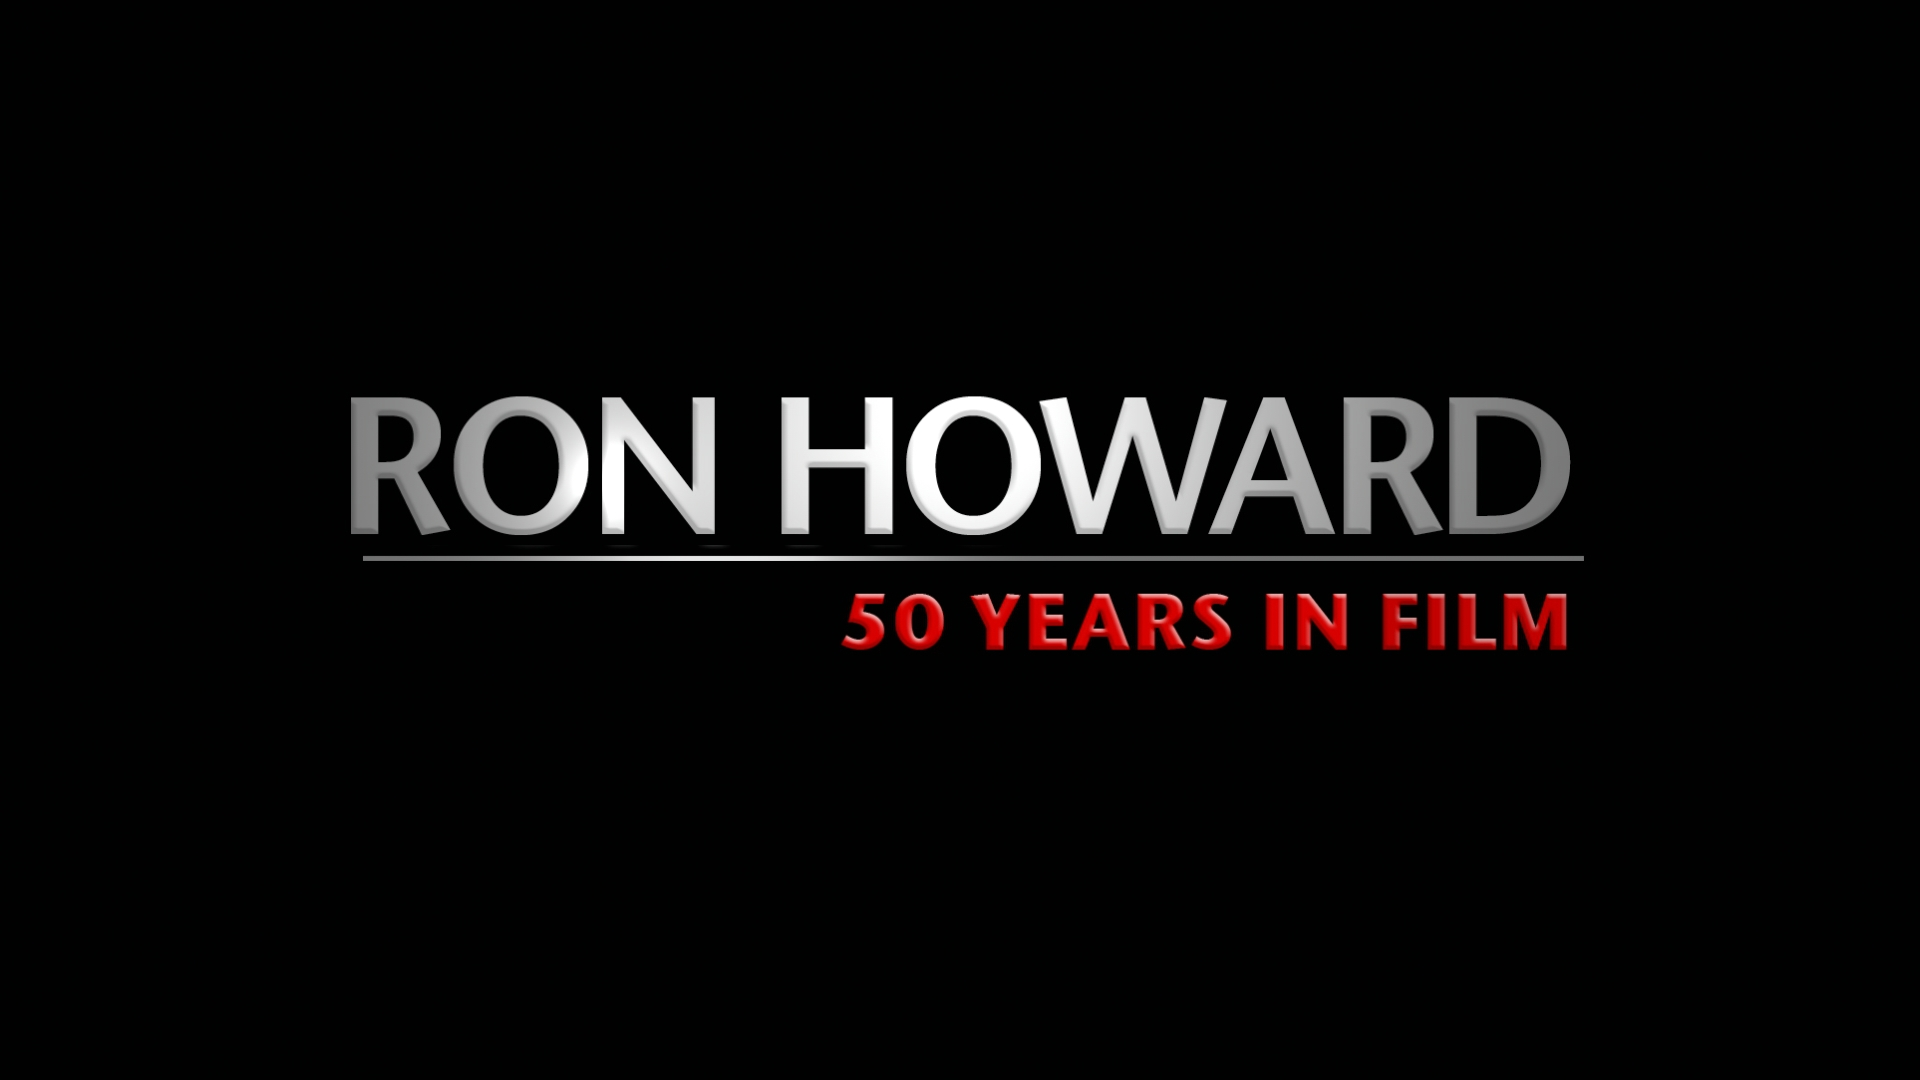 Ron Howard - 50 Years in Film